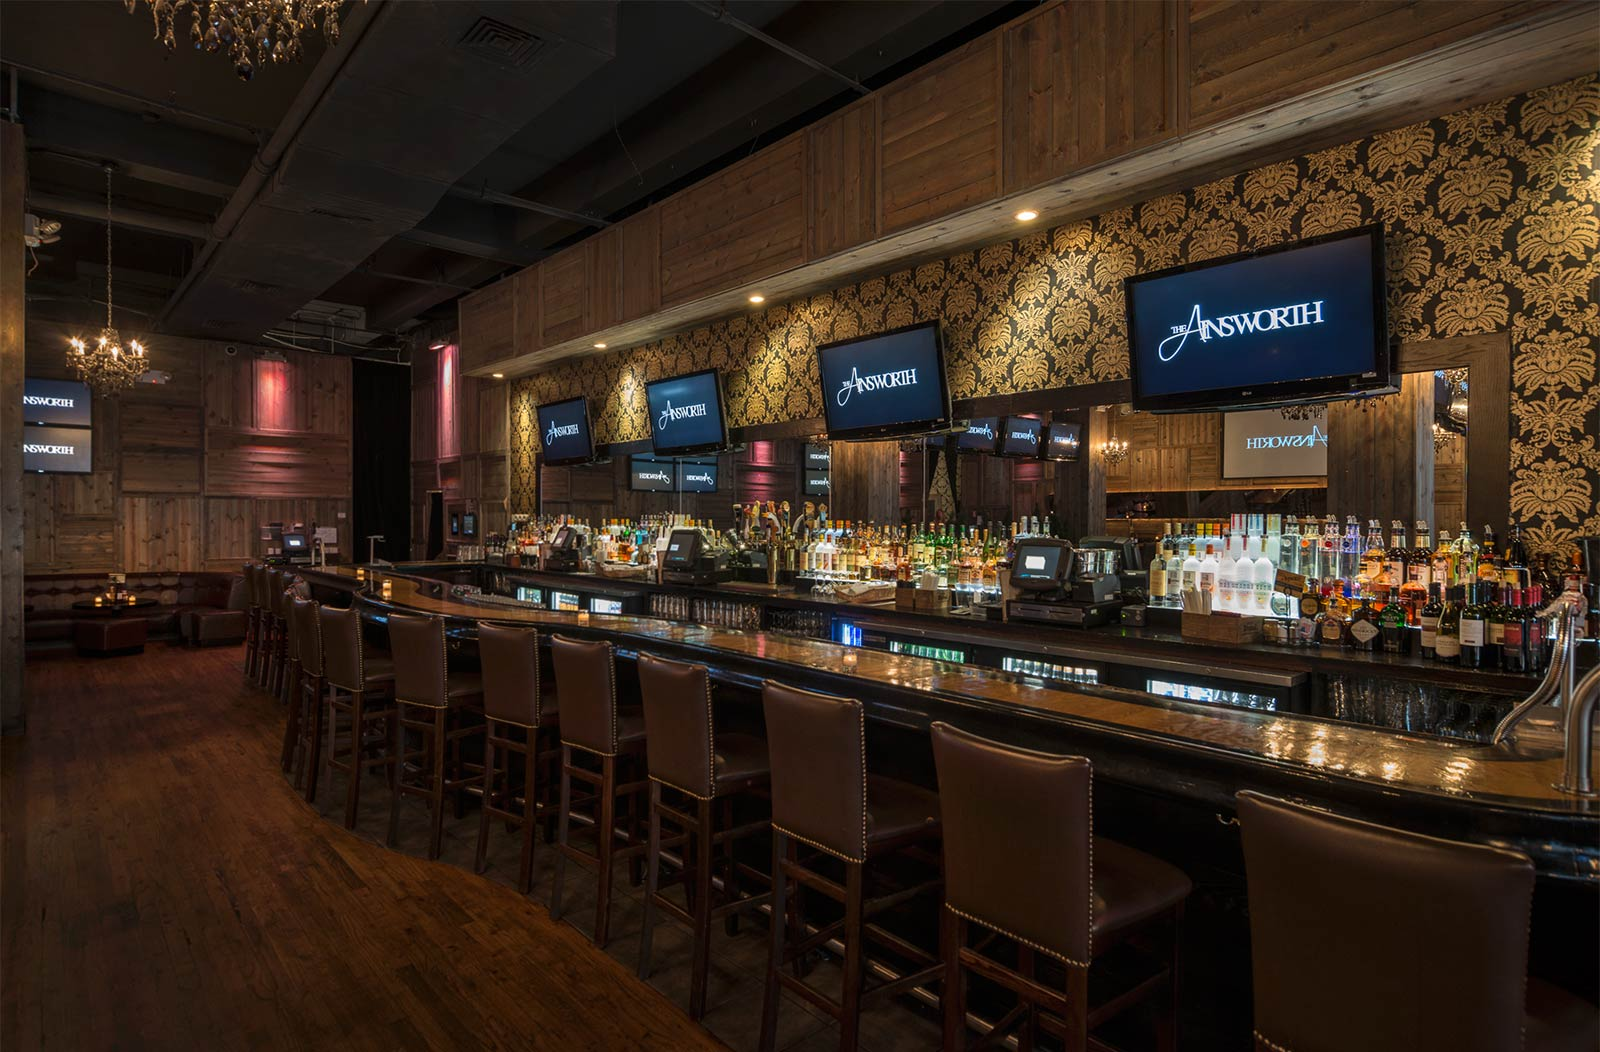 The bar of the original Ainsworth in Chelsea, New York.